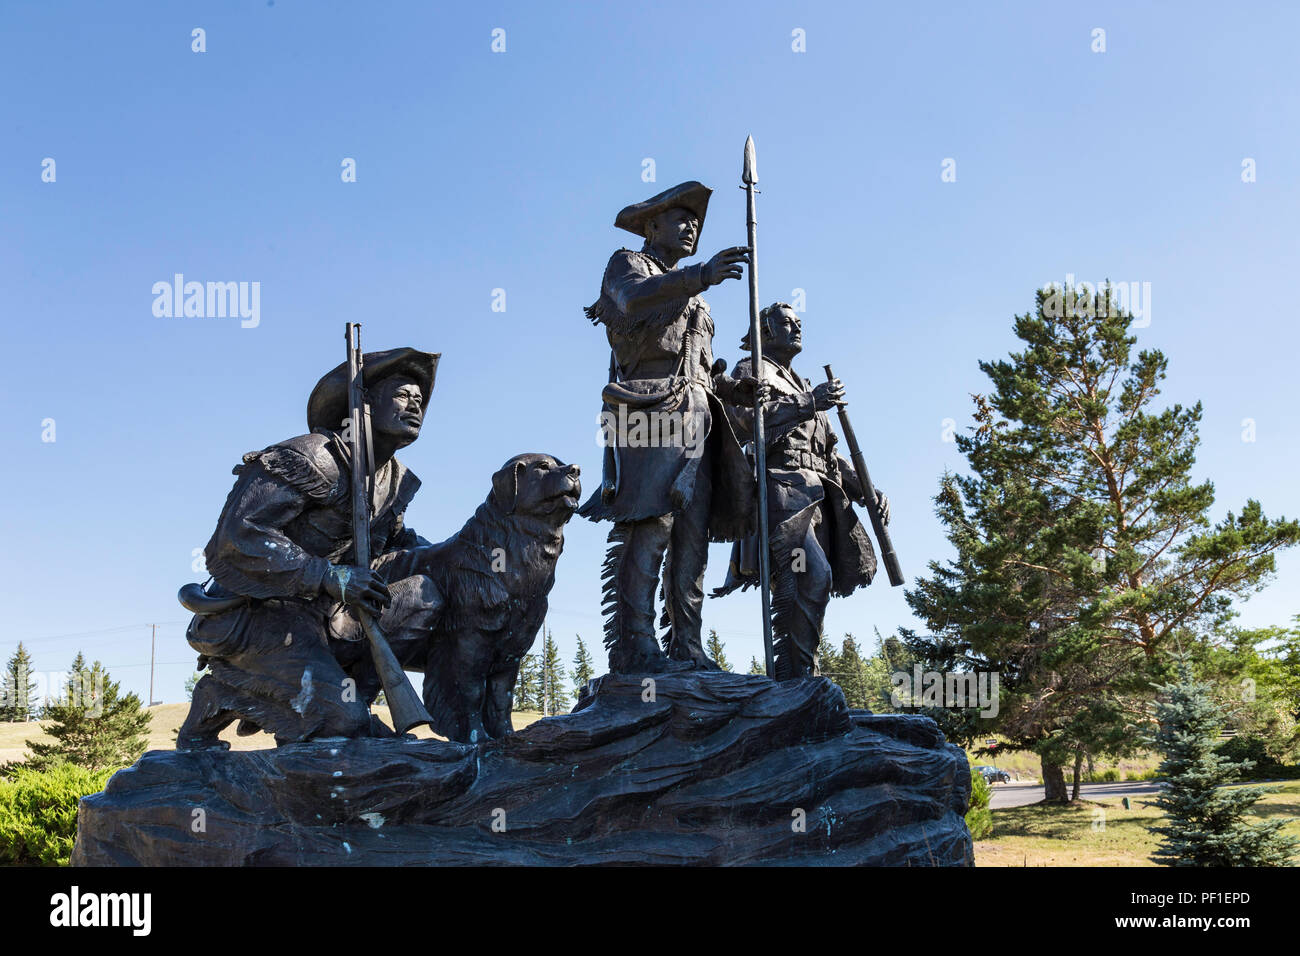 'Explorers at the Portage' Sculpture by Bob Scriver in Great Falls, Montana, USA - Stock Image